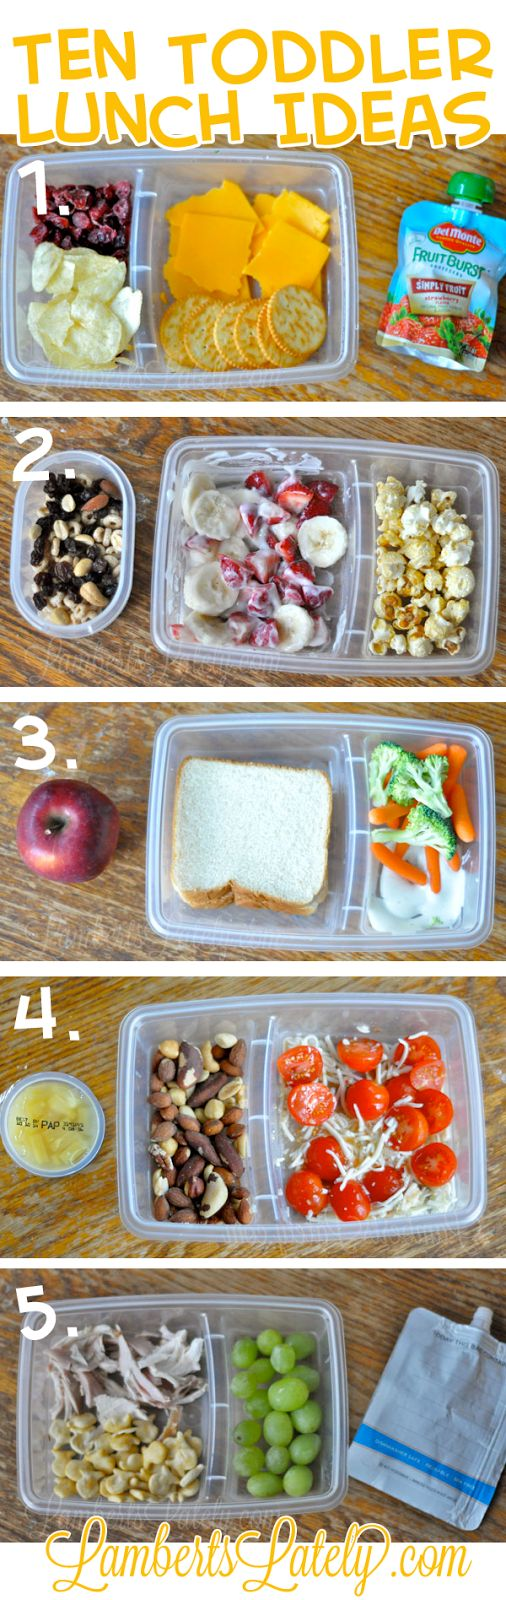 Ten (Quick and Easy) Toddler School Lunch Ideas (Brought to you by Del Monte) #ad #BH #squeezeorspoon